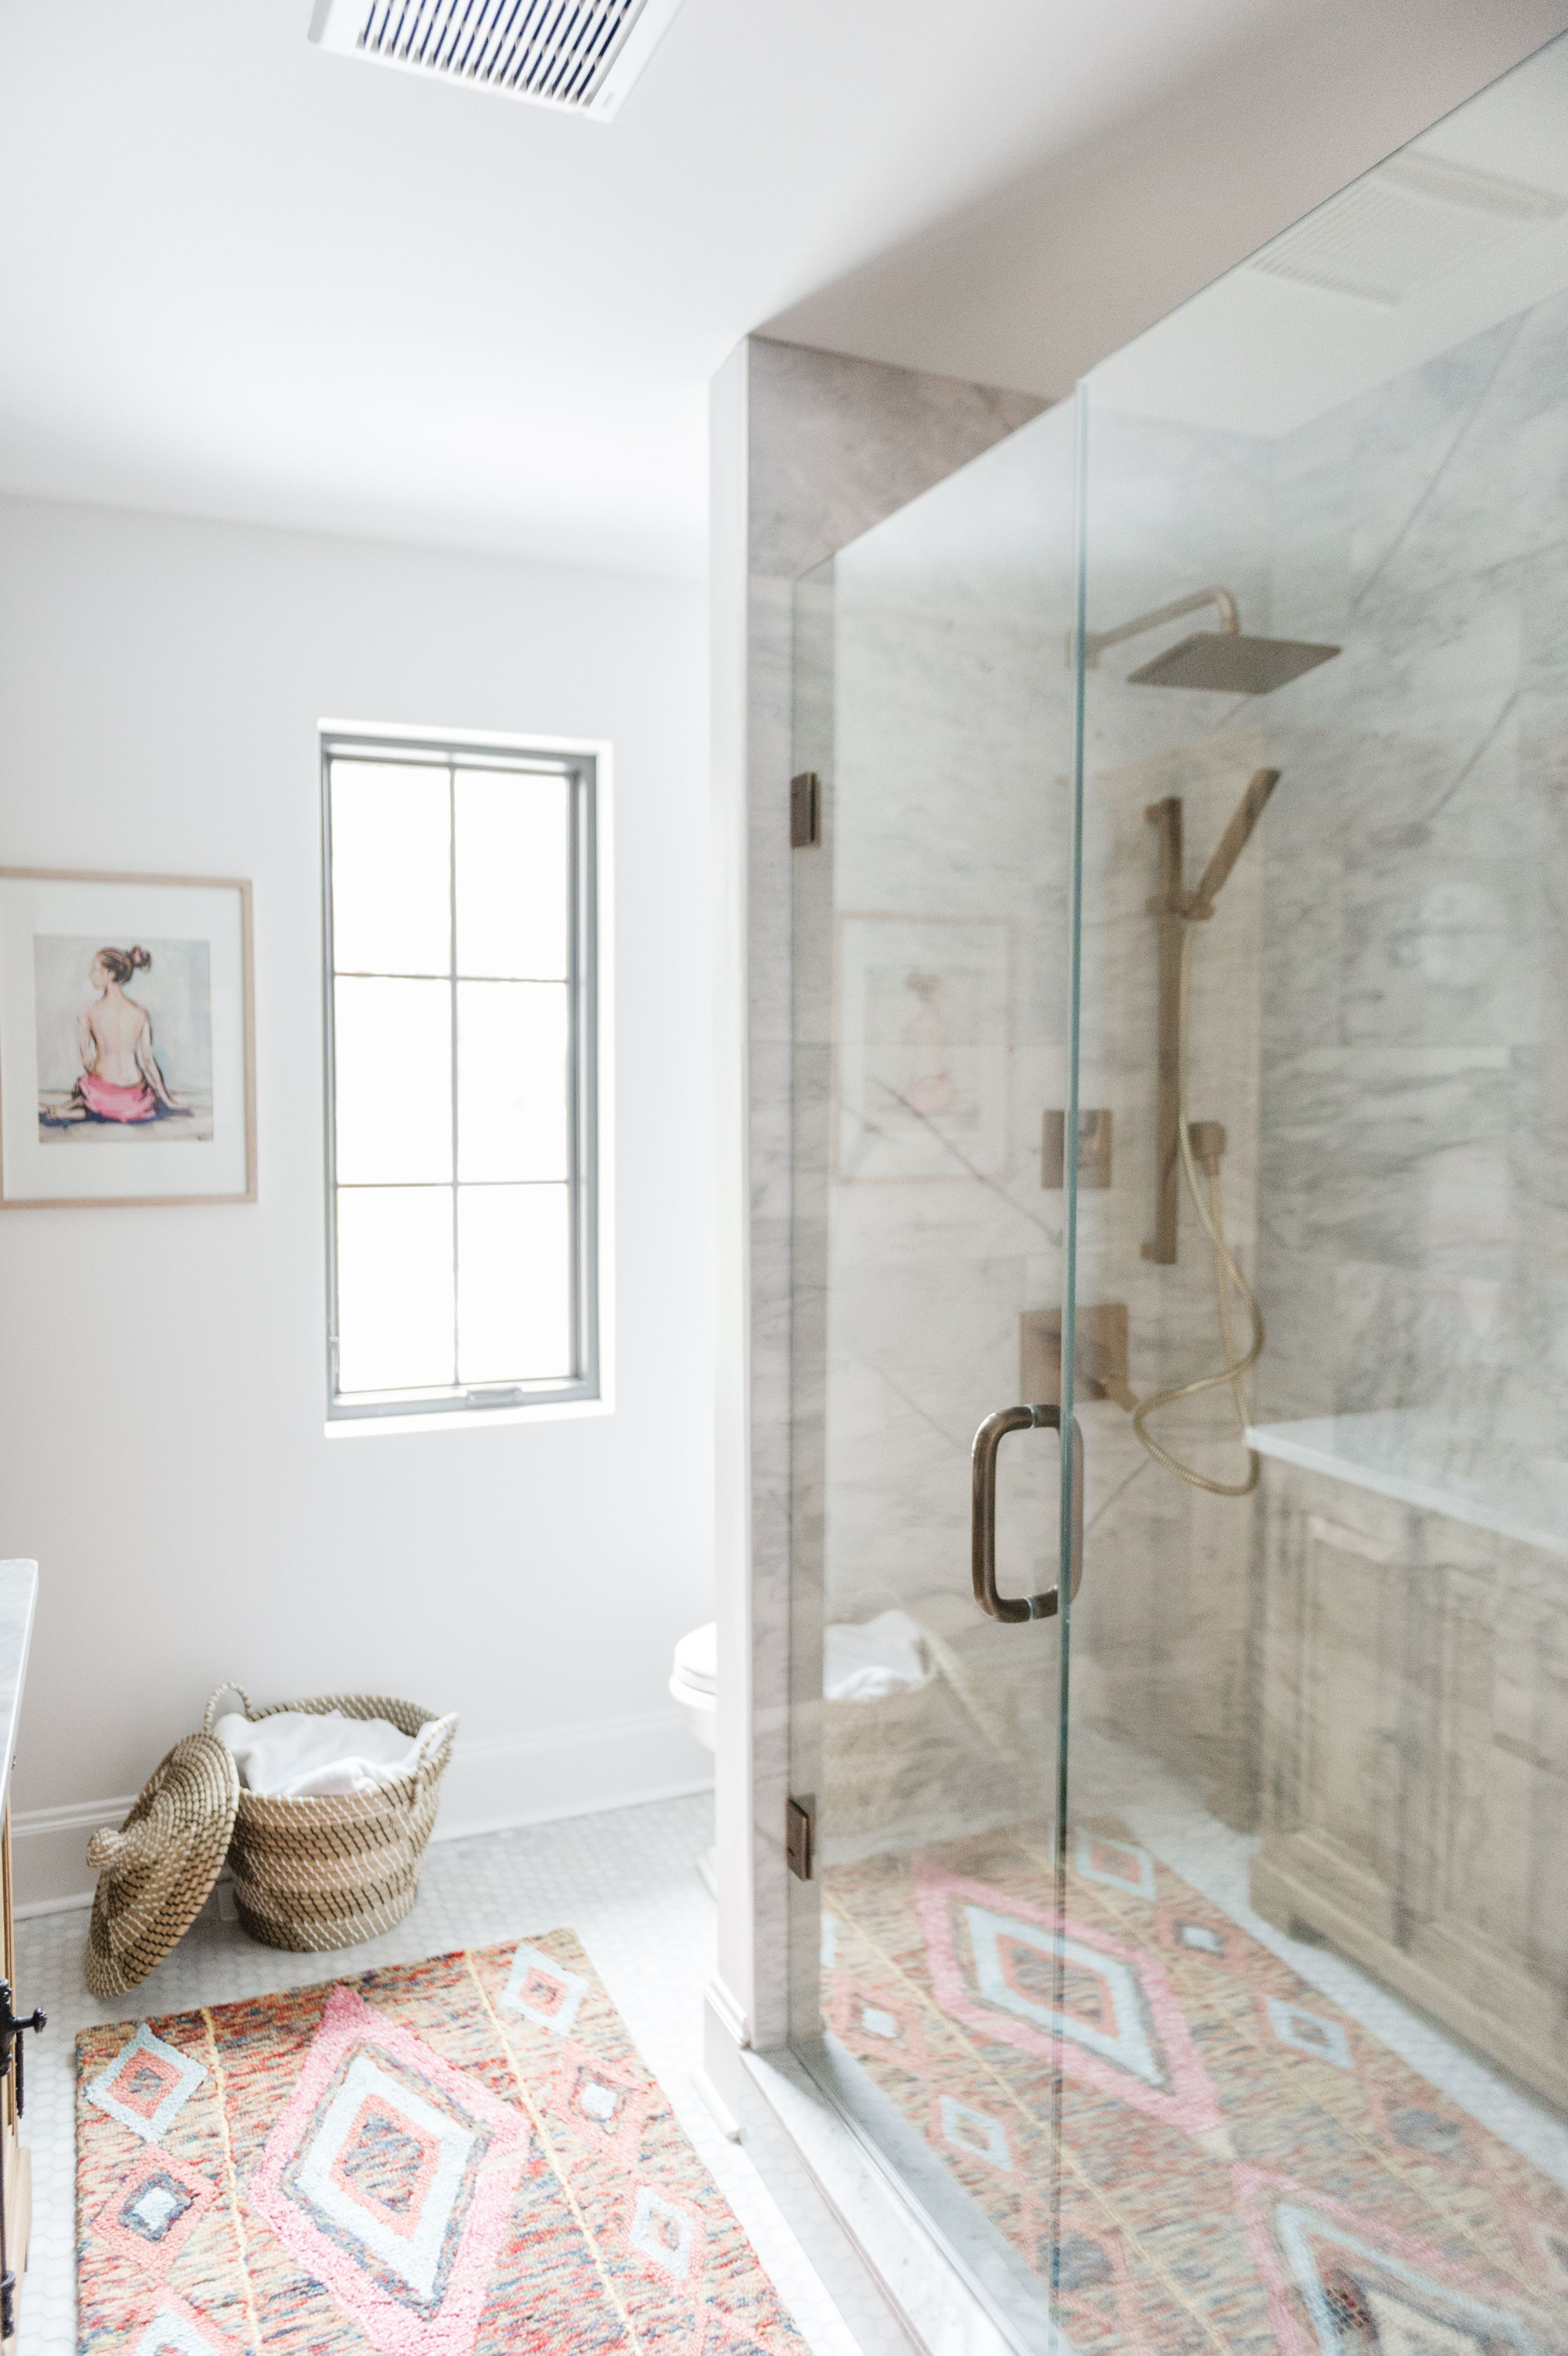 Im Beyond Excited To Share This Modern Boho Bathroom Renovation Reveal With You Guys The Space Has Faucets Cabinetry And Lighting